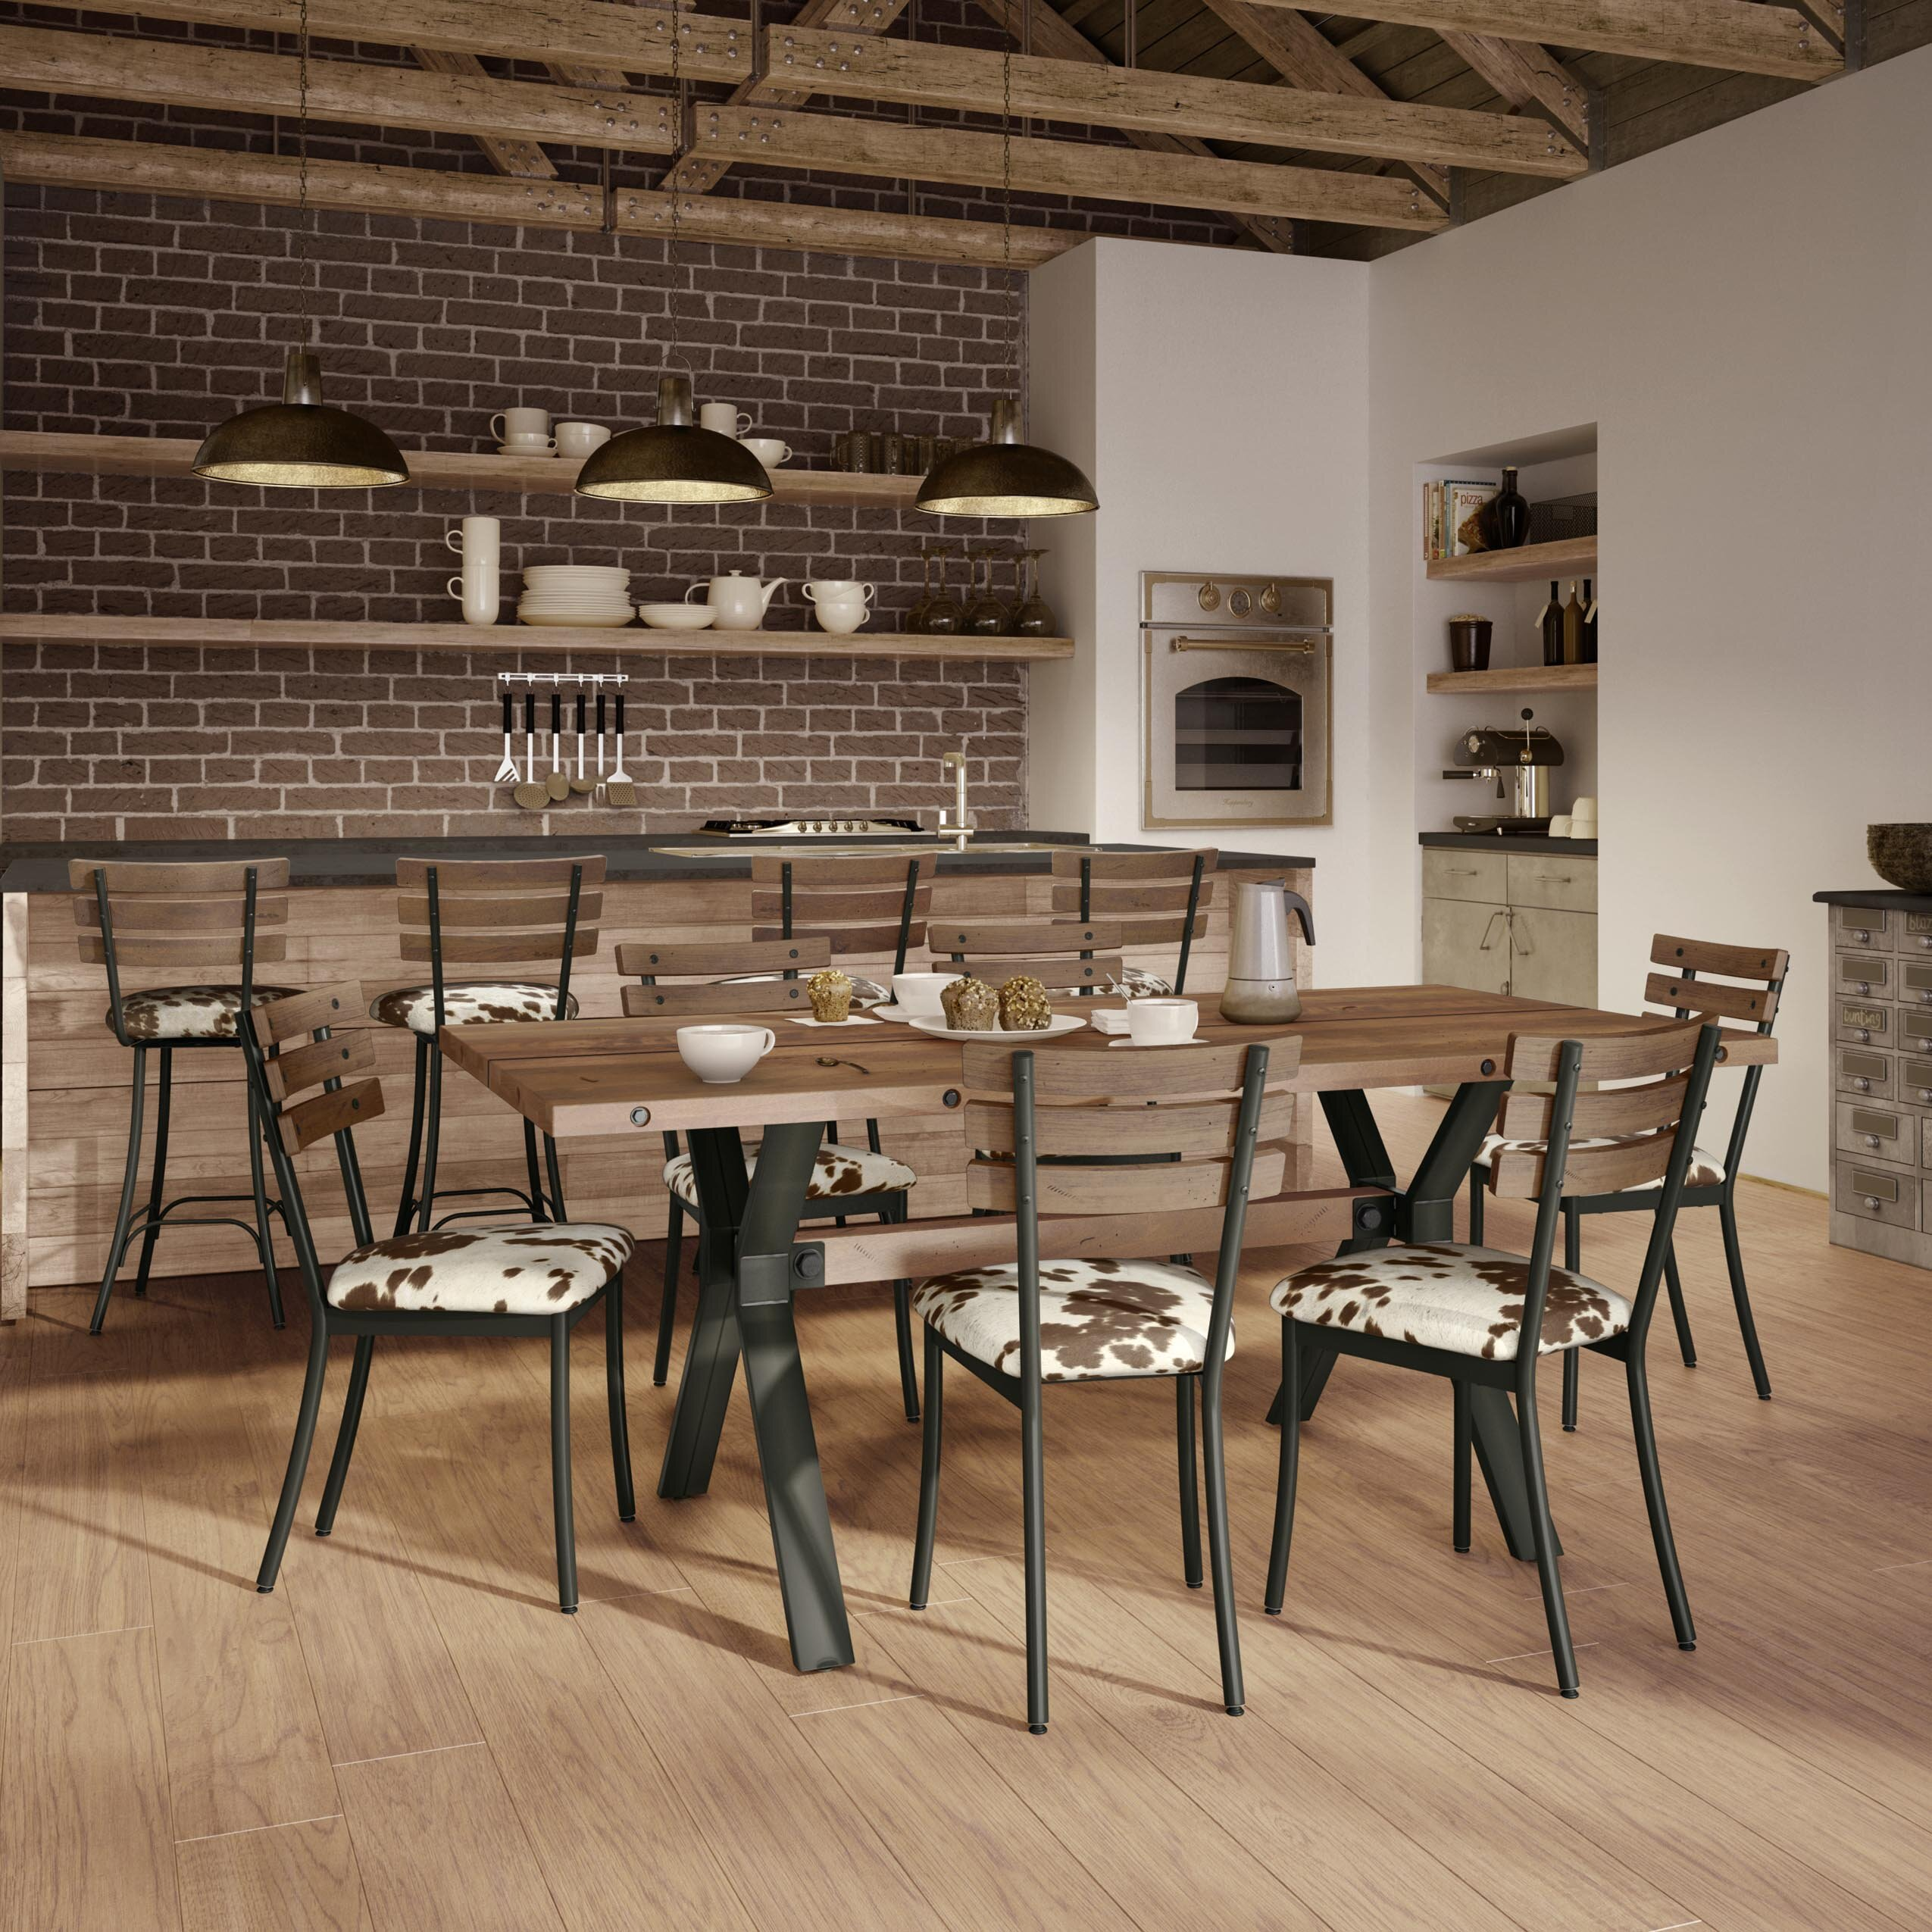 Stories Darcelle Piece Metal And Aged Wood Dining Set Wayfair - Aged wood dining table